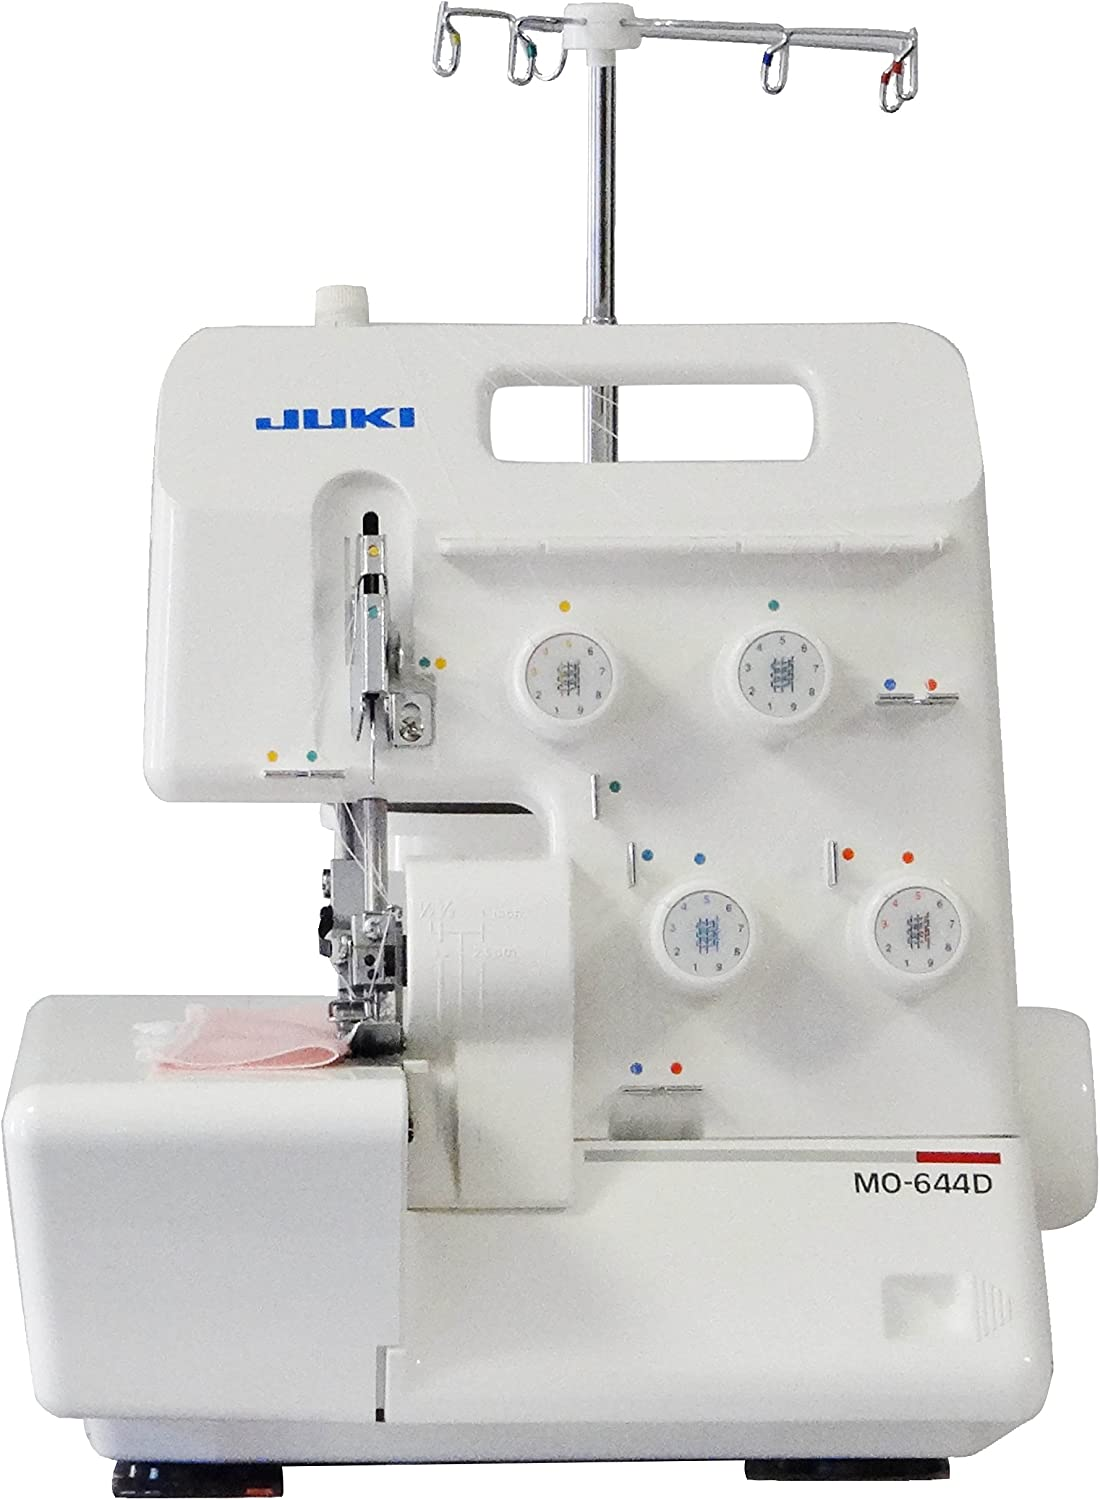 JUKI overlock, Metal, Color Blanco, 34 x 27 x 29,5 cm: Amazon.es ...